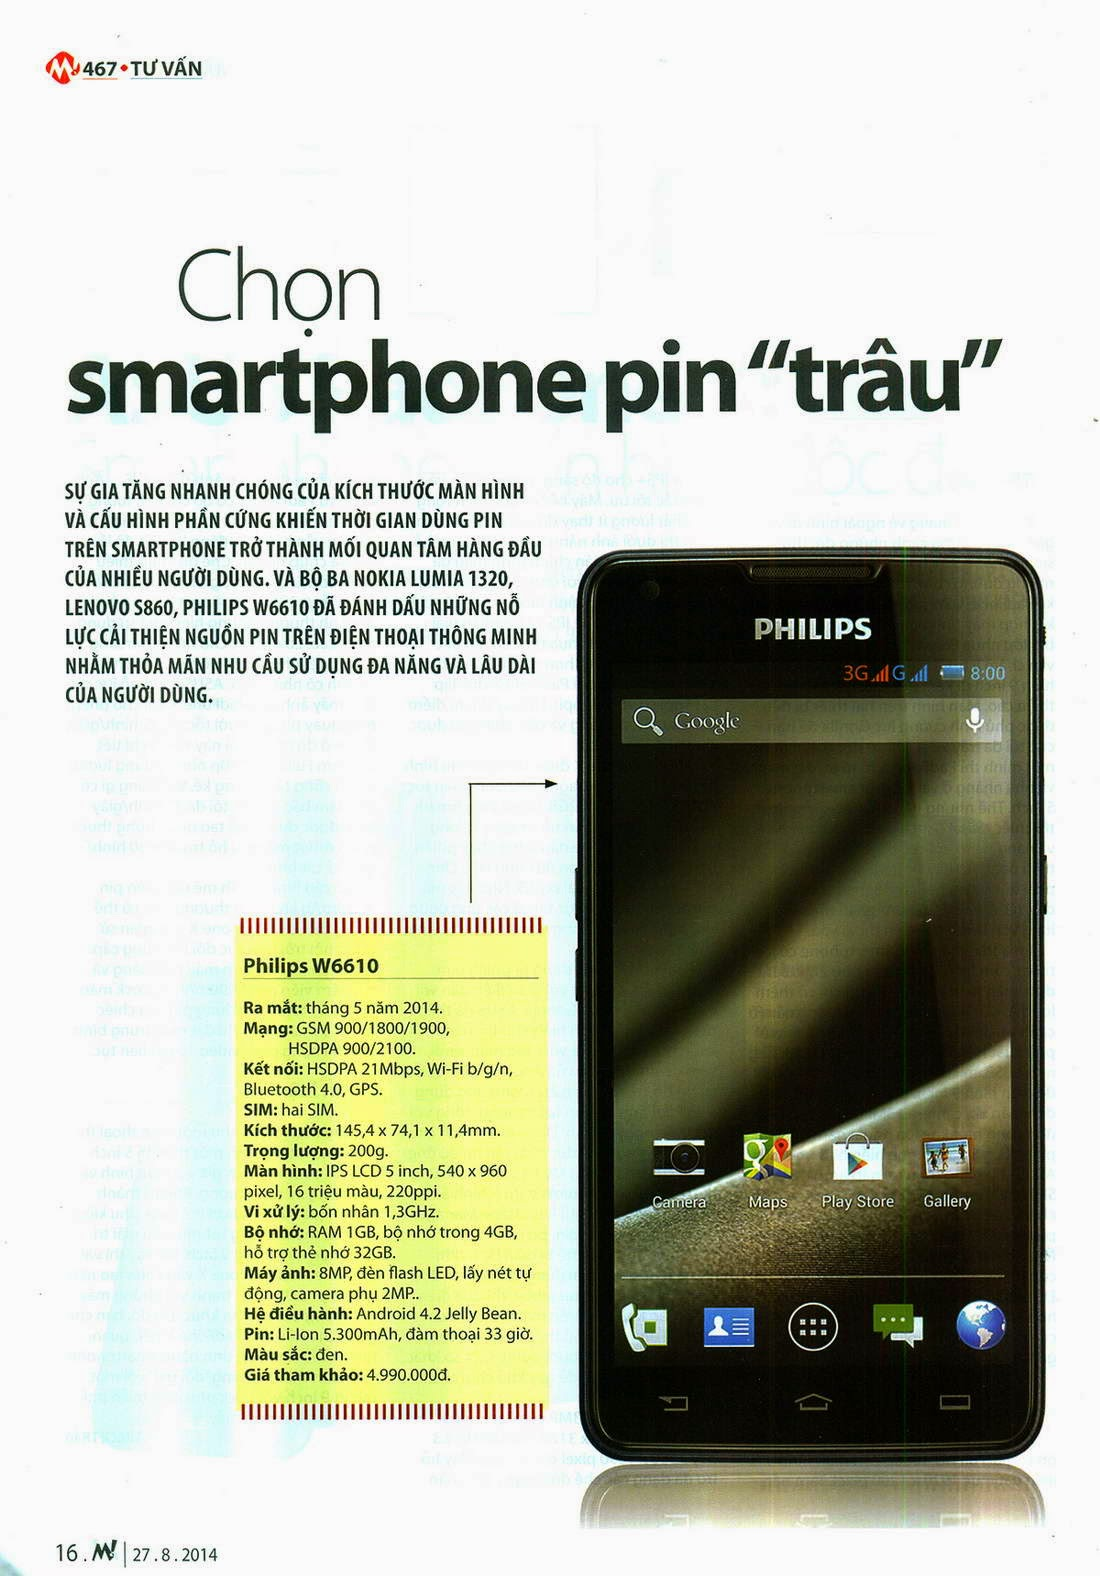 EChip Mobile 467